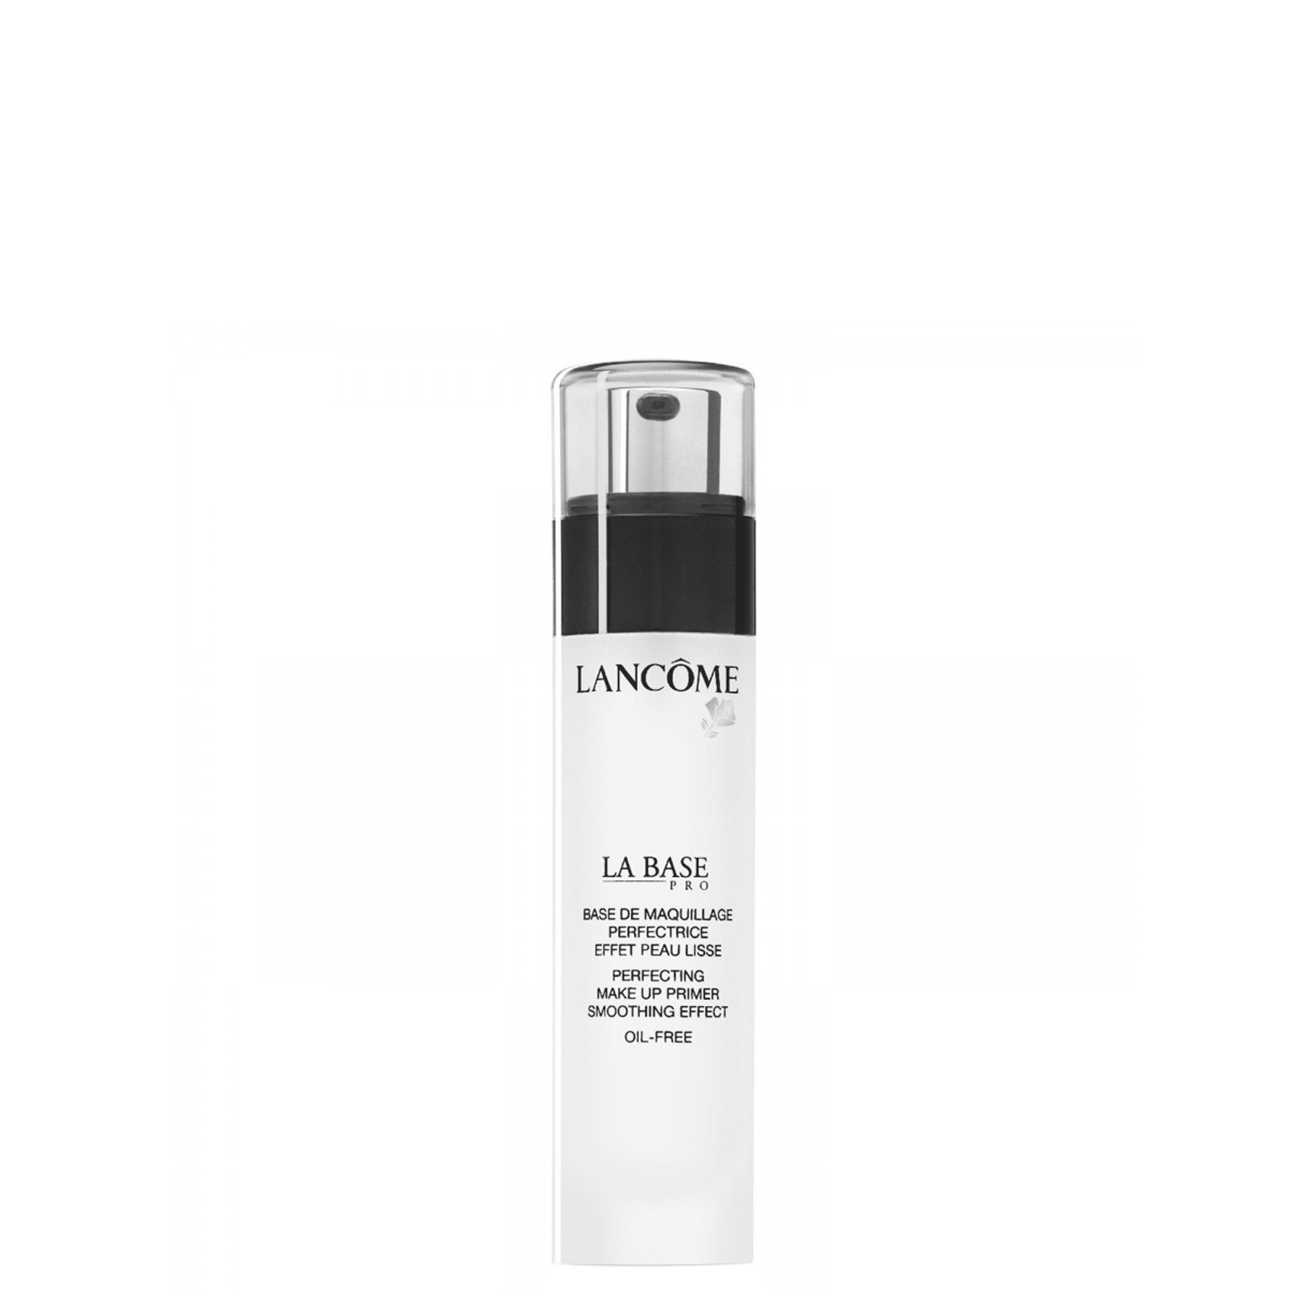 La Base Pro Make-Up Primer 25 Ml Lancôme imagine 2021 bestvalue.eu